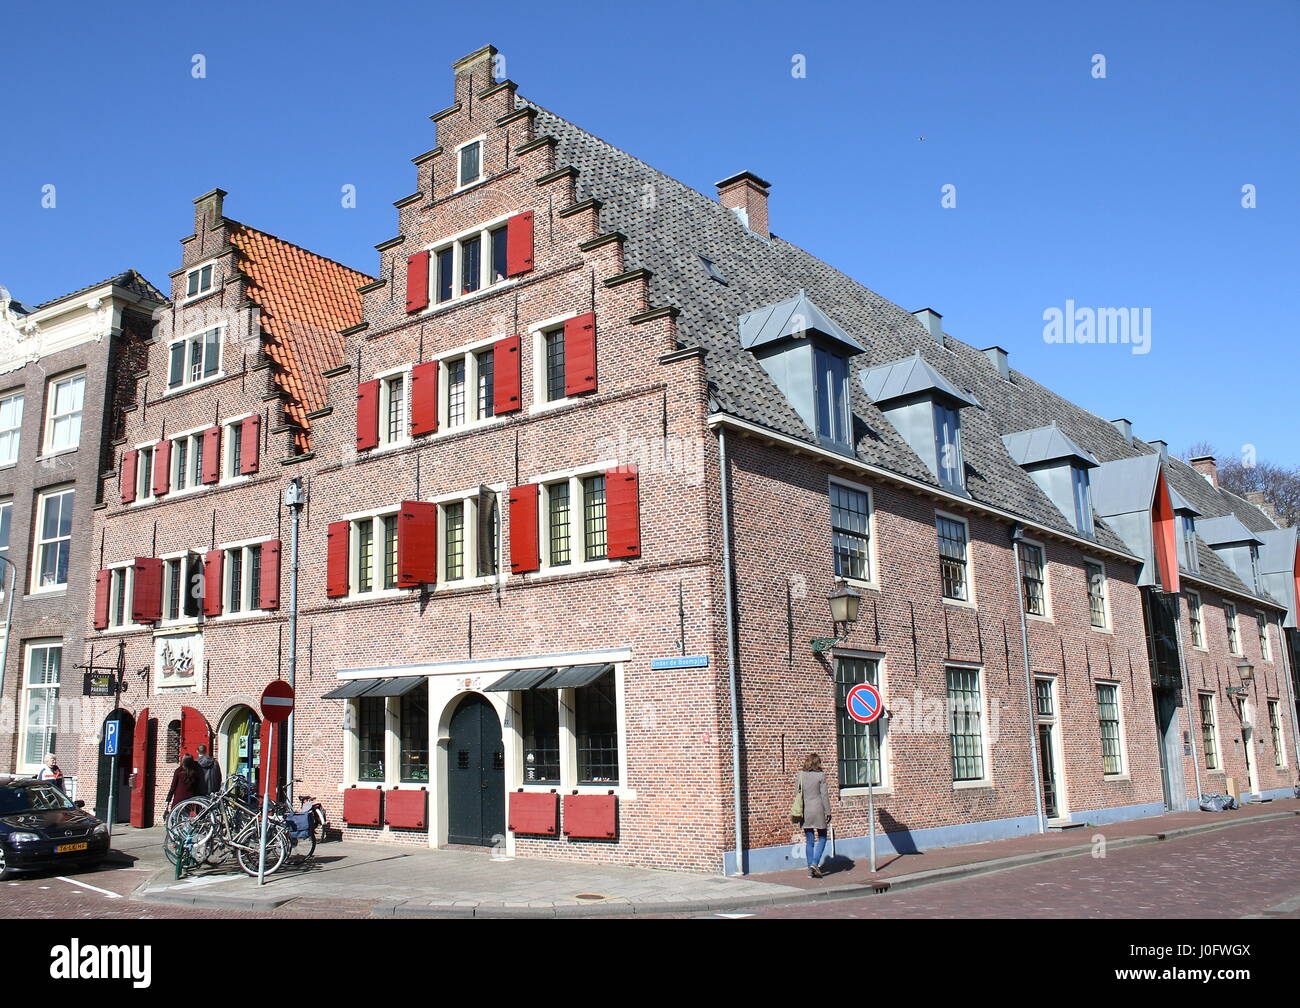 17th century warehouses of the Dutch East India company (Vereenigde Oostindische Compagnie) in the old Zuiderzee - Stock Image